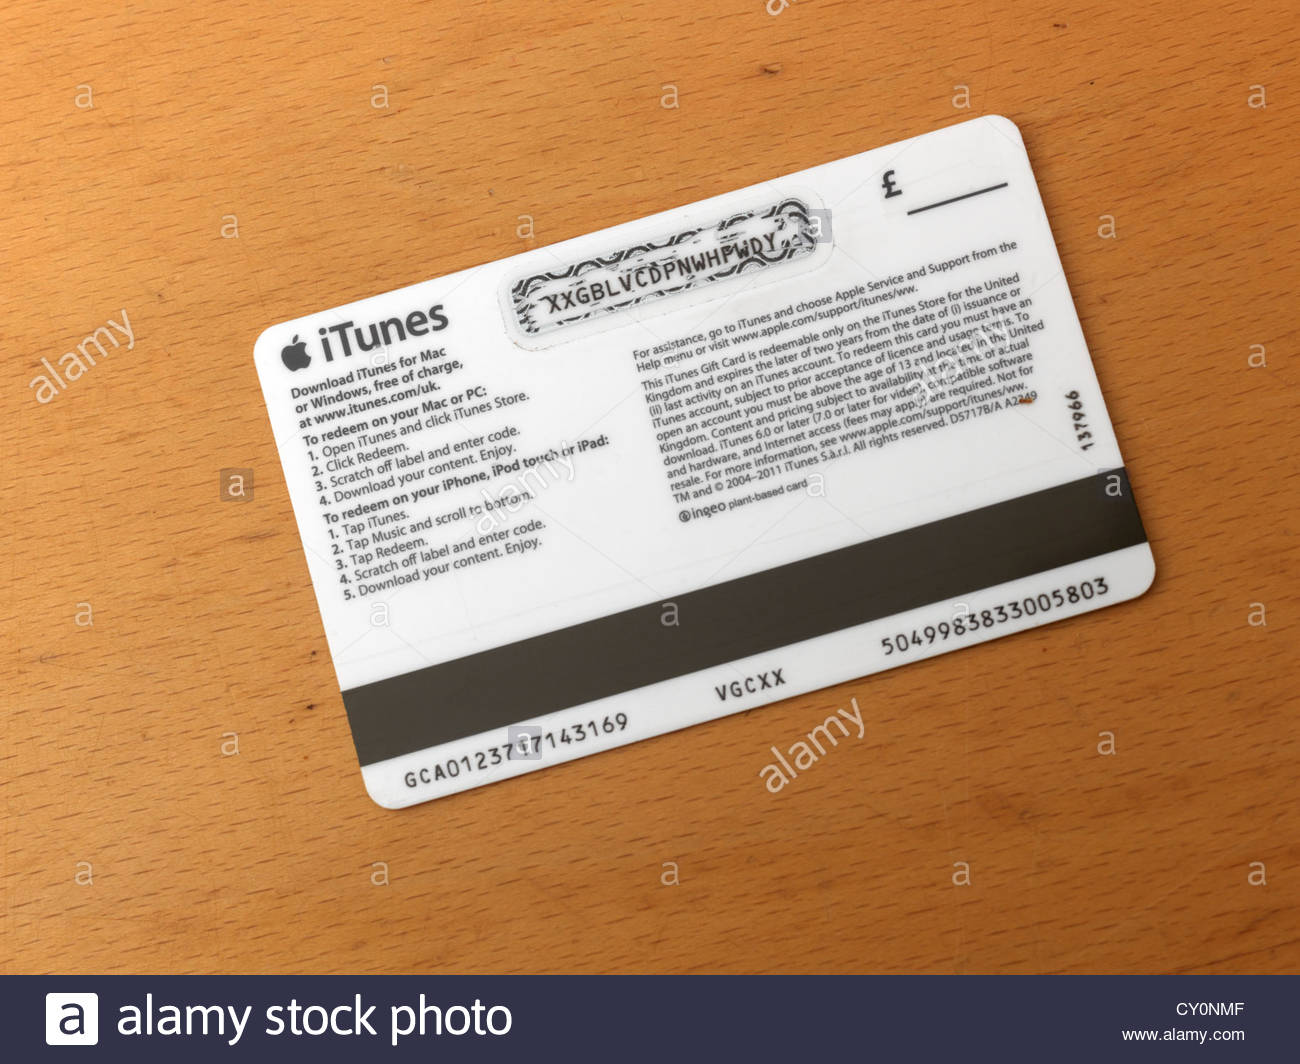 apple itunes gift card balance 1